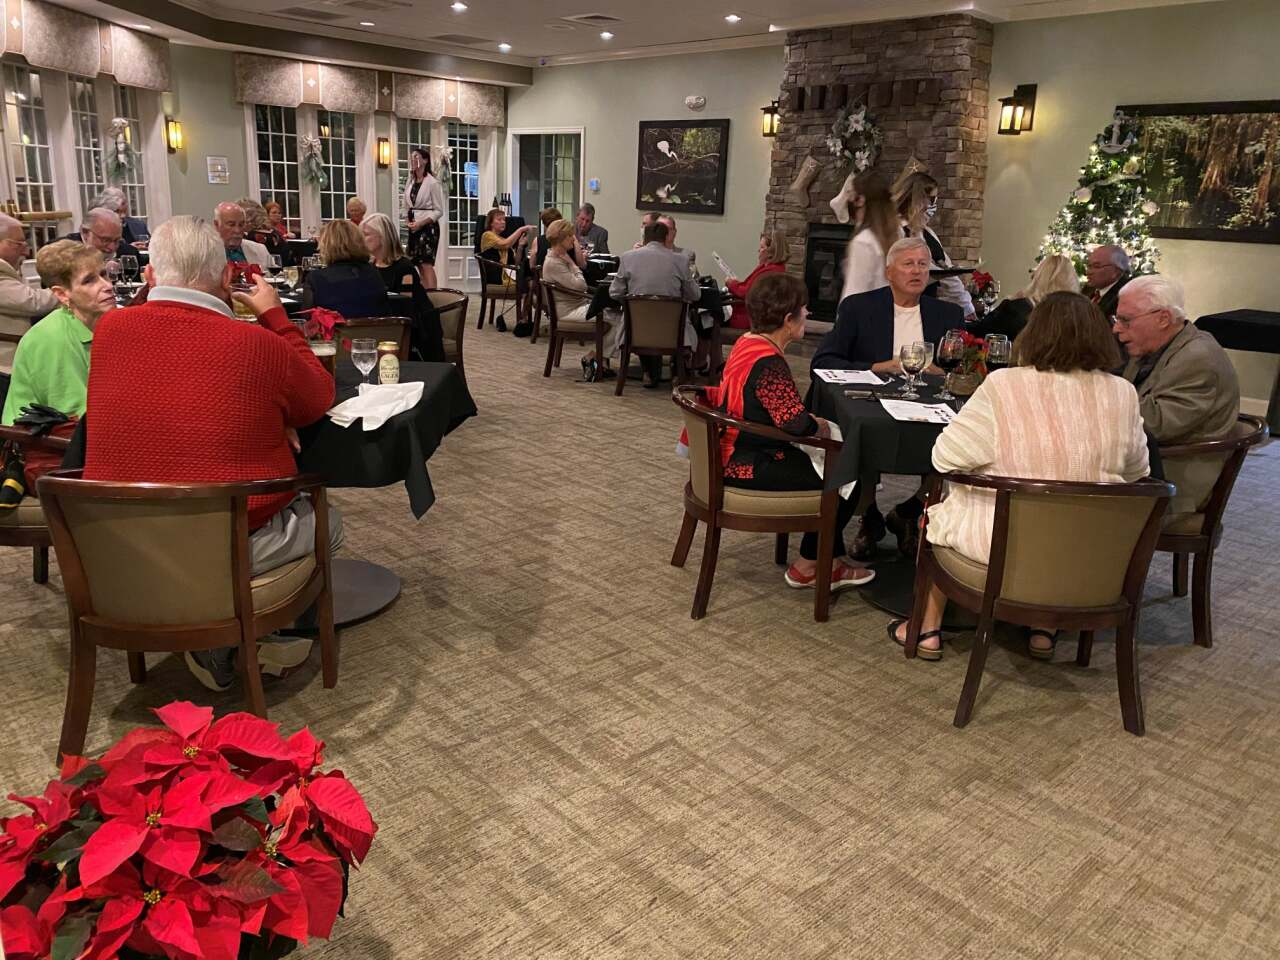 guests dining and food at Chesapeake Bay Grille restaurant